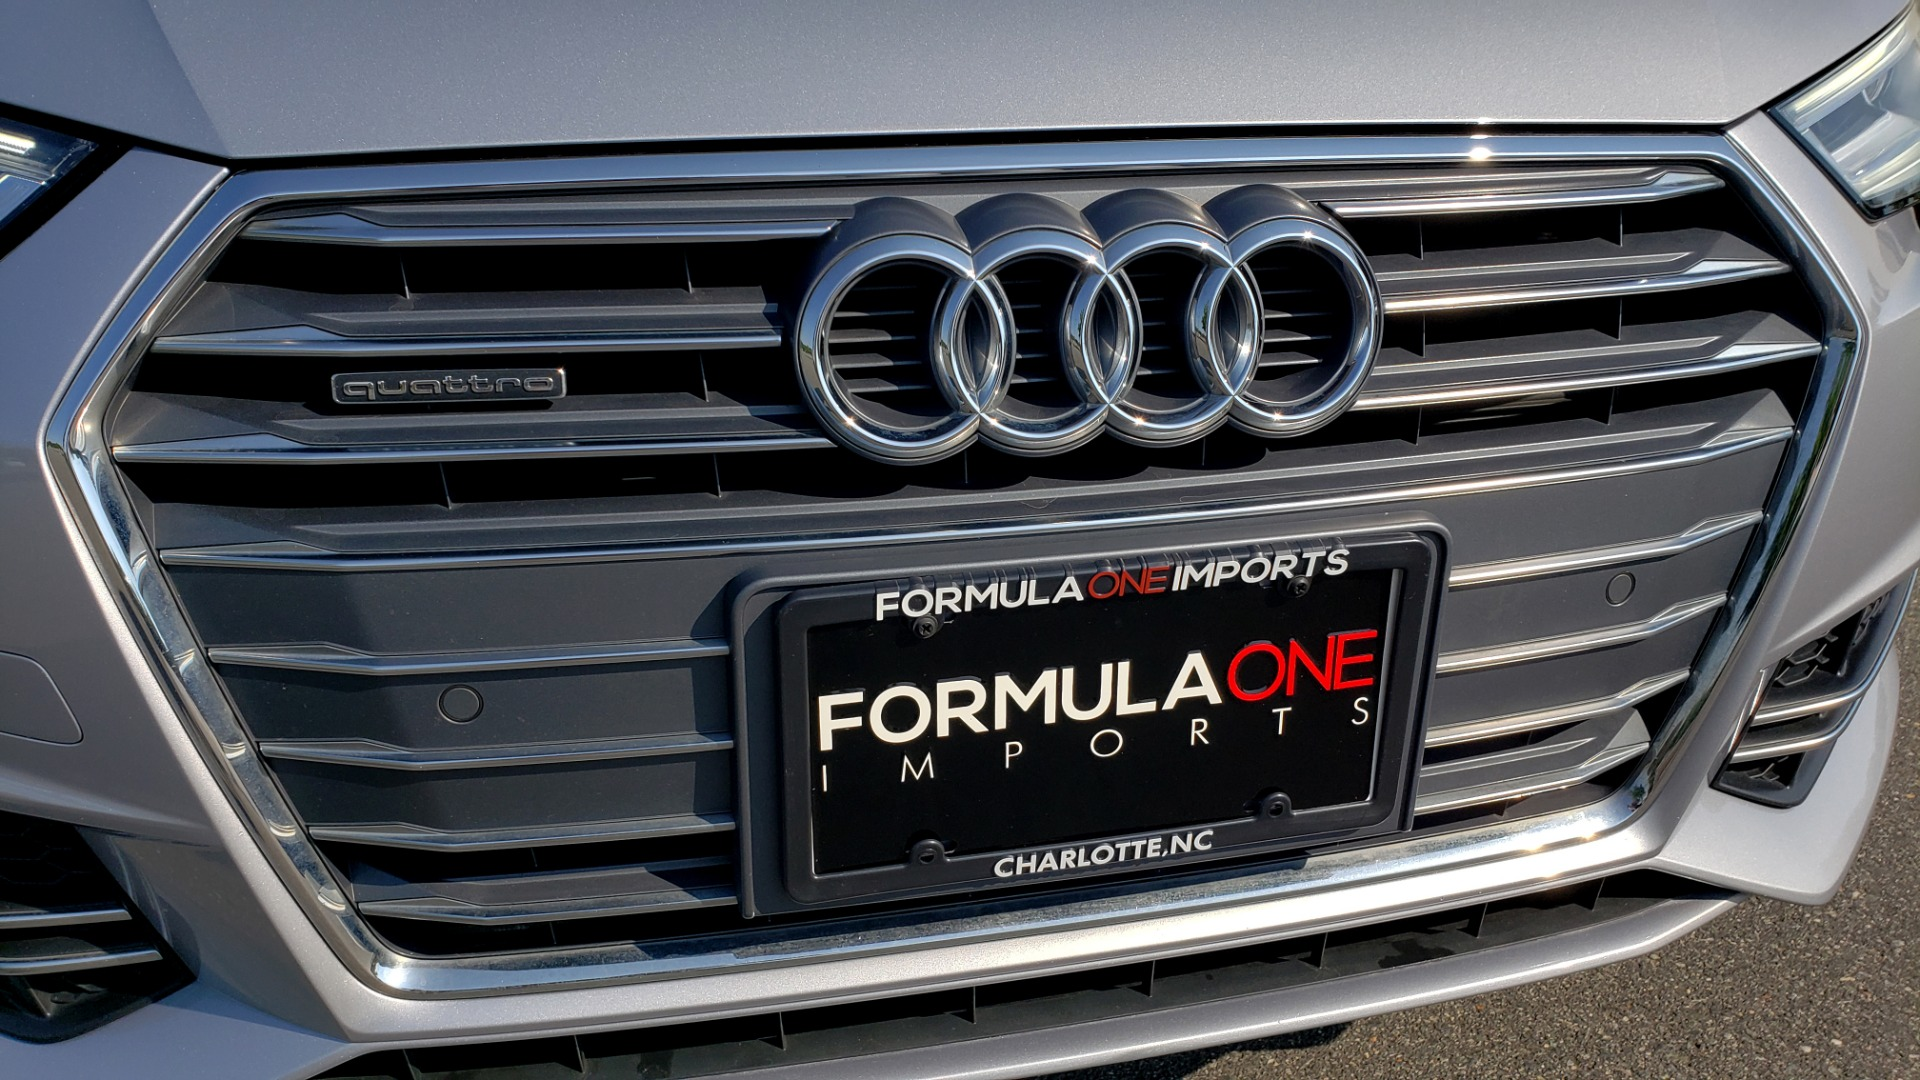 Used 2018 Audi A4 PREMIUM PLUS 2.0T / NAV / SUNROOF / B&O SND / CLD WTHR / REARVIEW for sale $29,395 at Formula Imports in Charlotte NC 28227 25